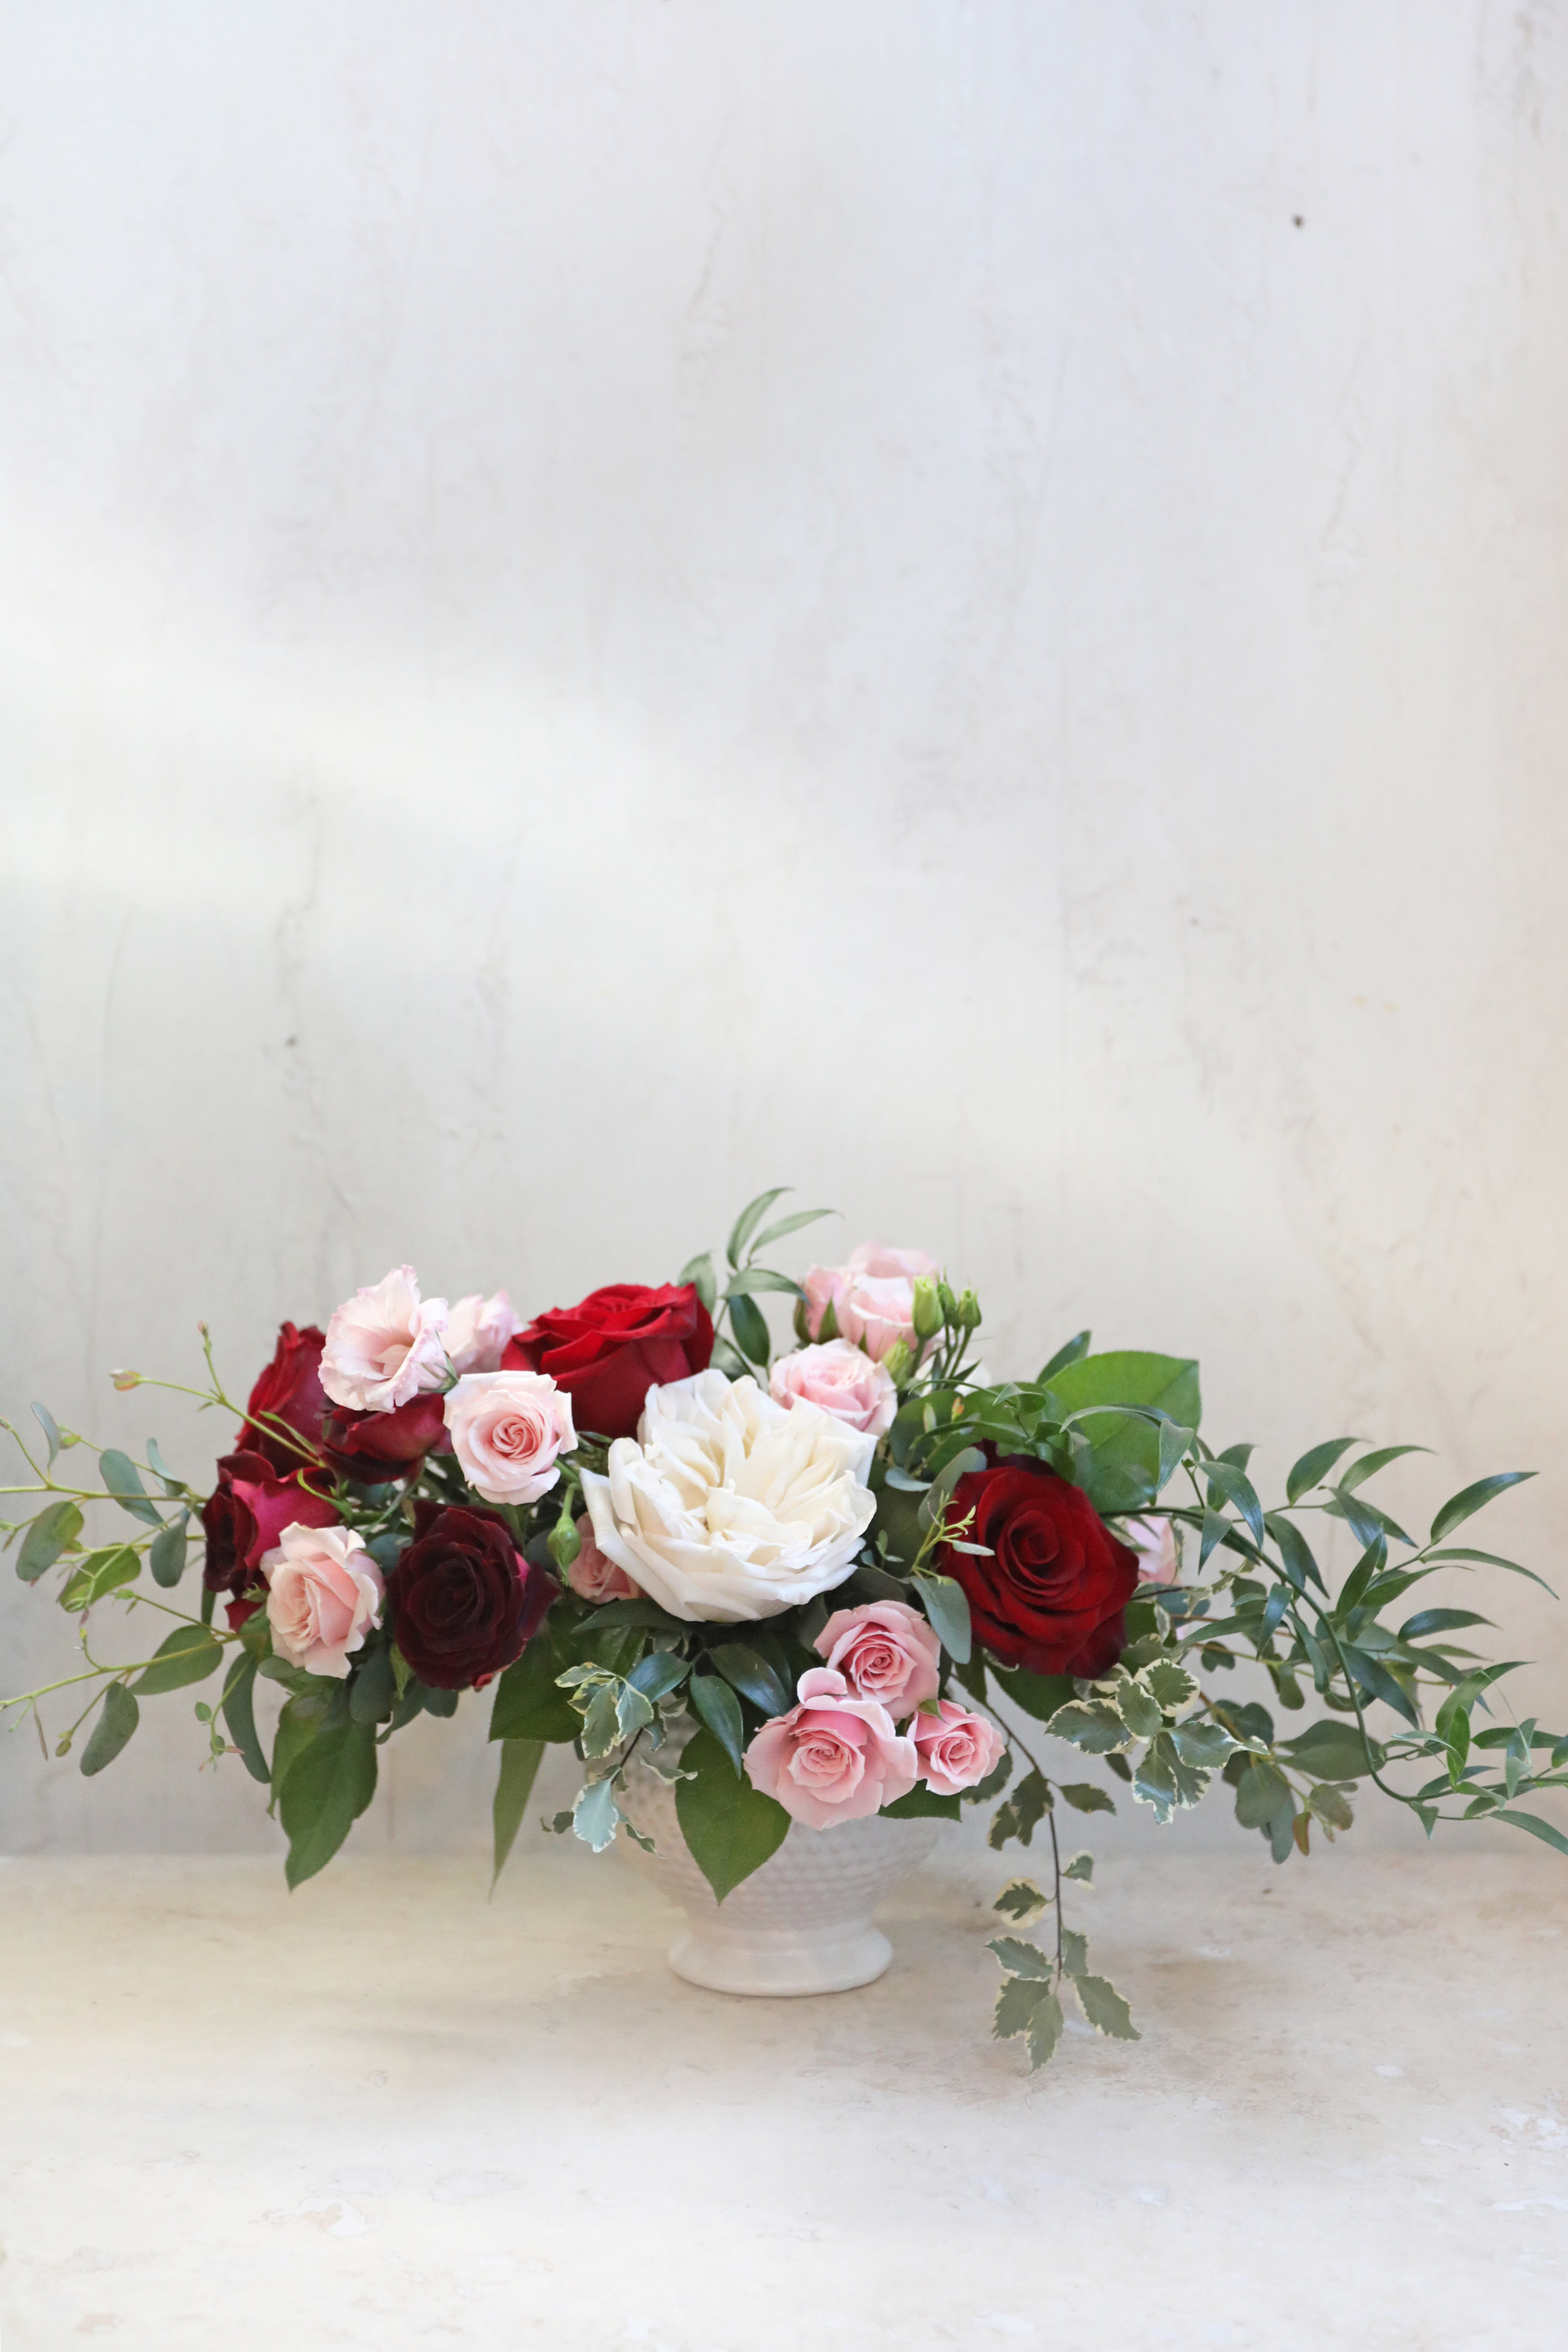 valentines day flowers boston pink red roses